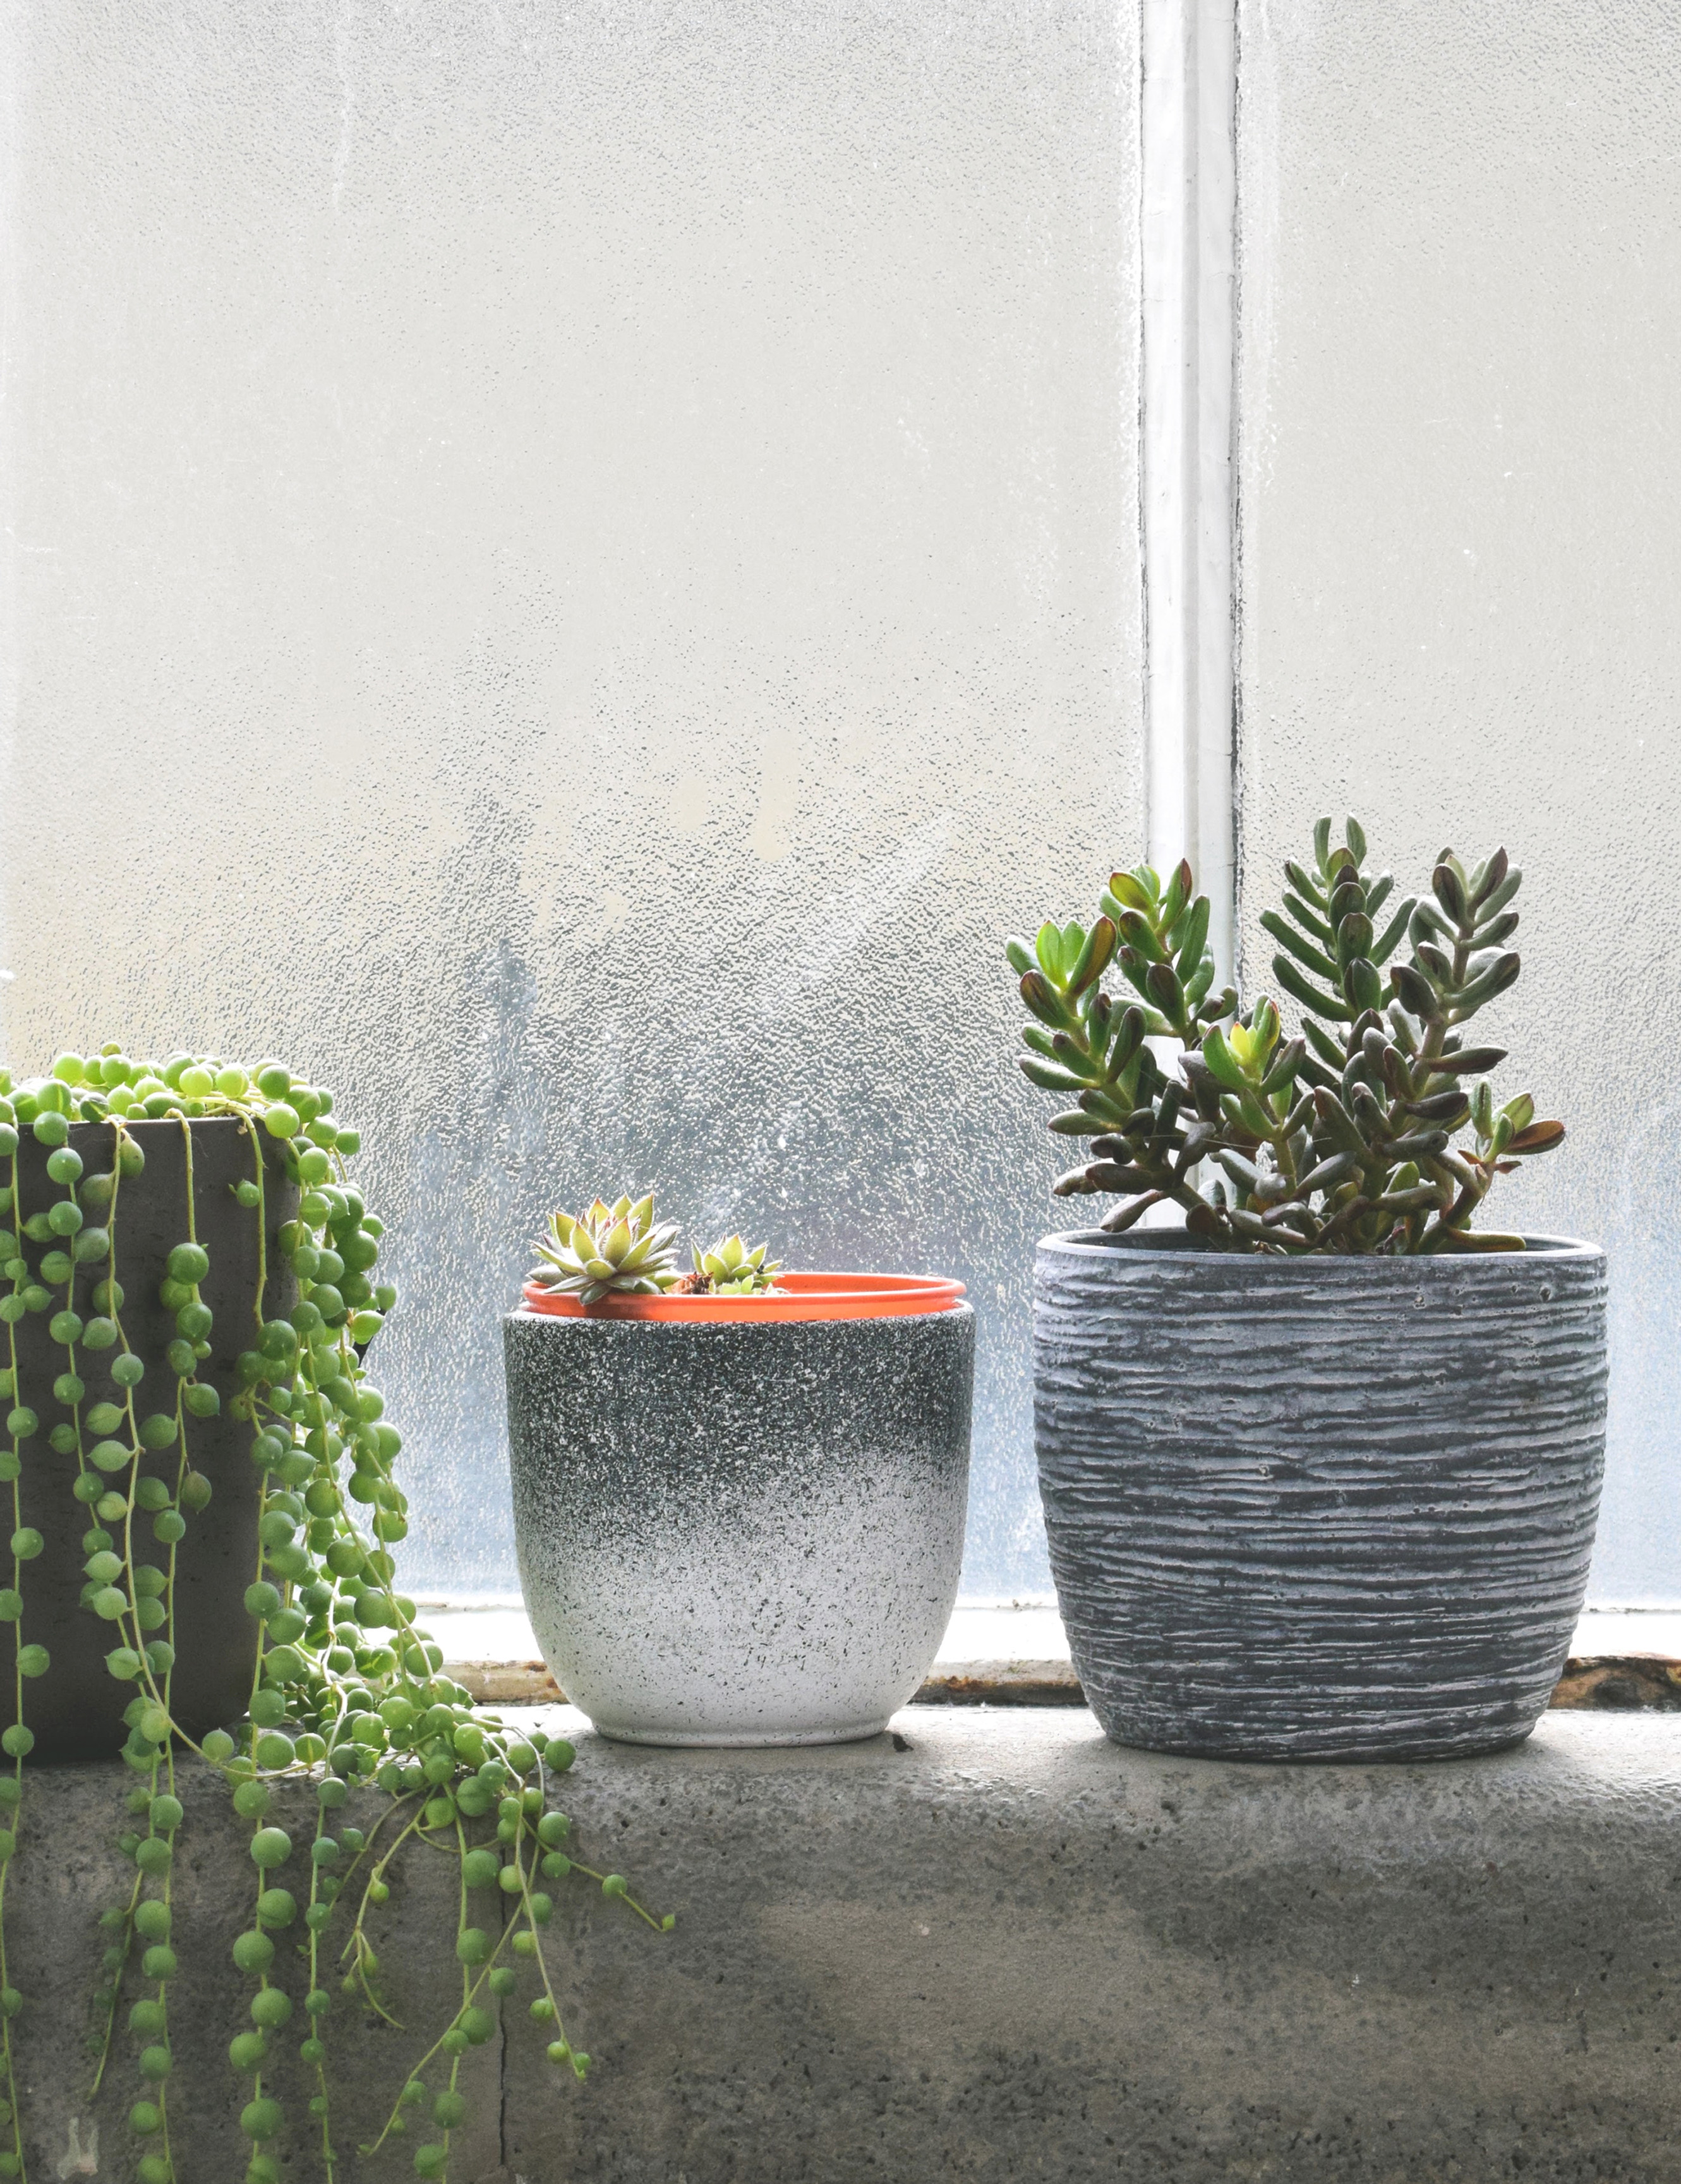 Glazing Ceramics for Small Objects